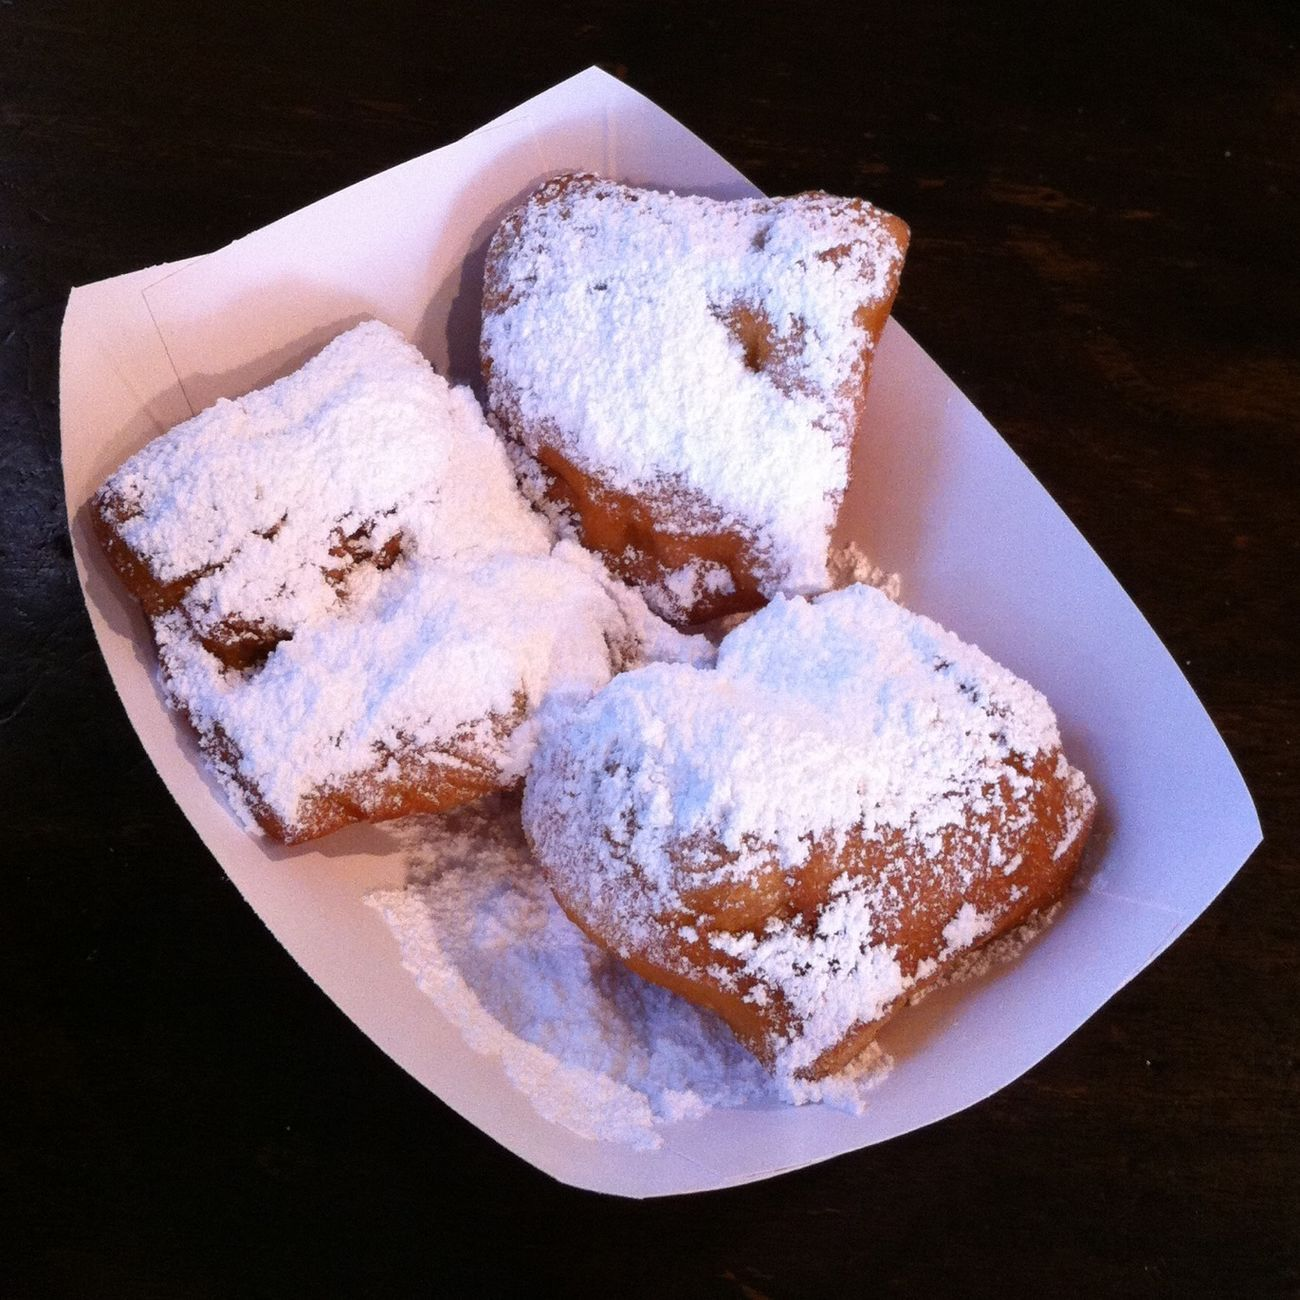 No better way to start a day than with beignets!